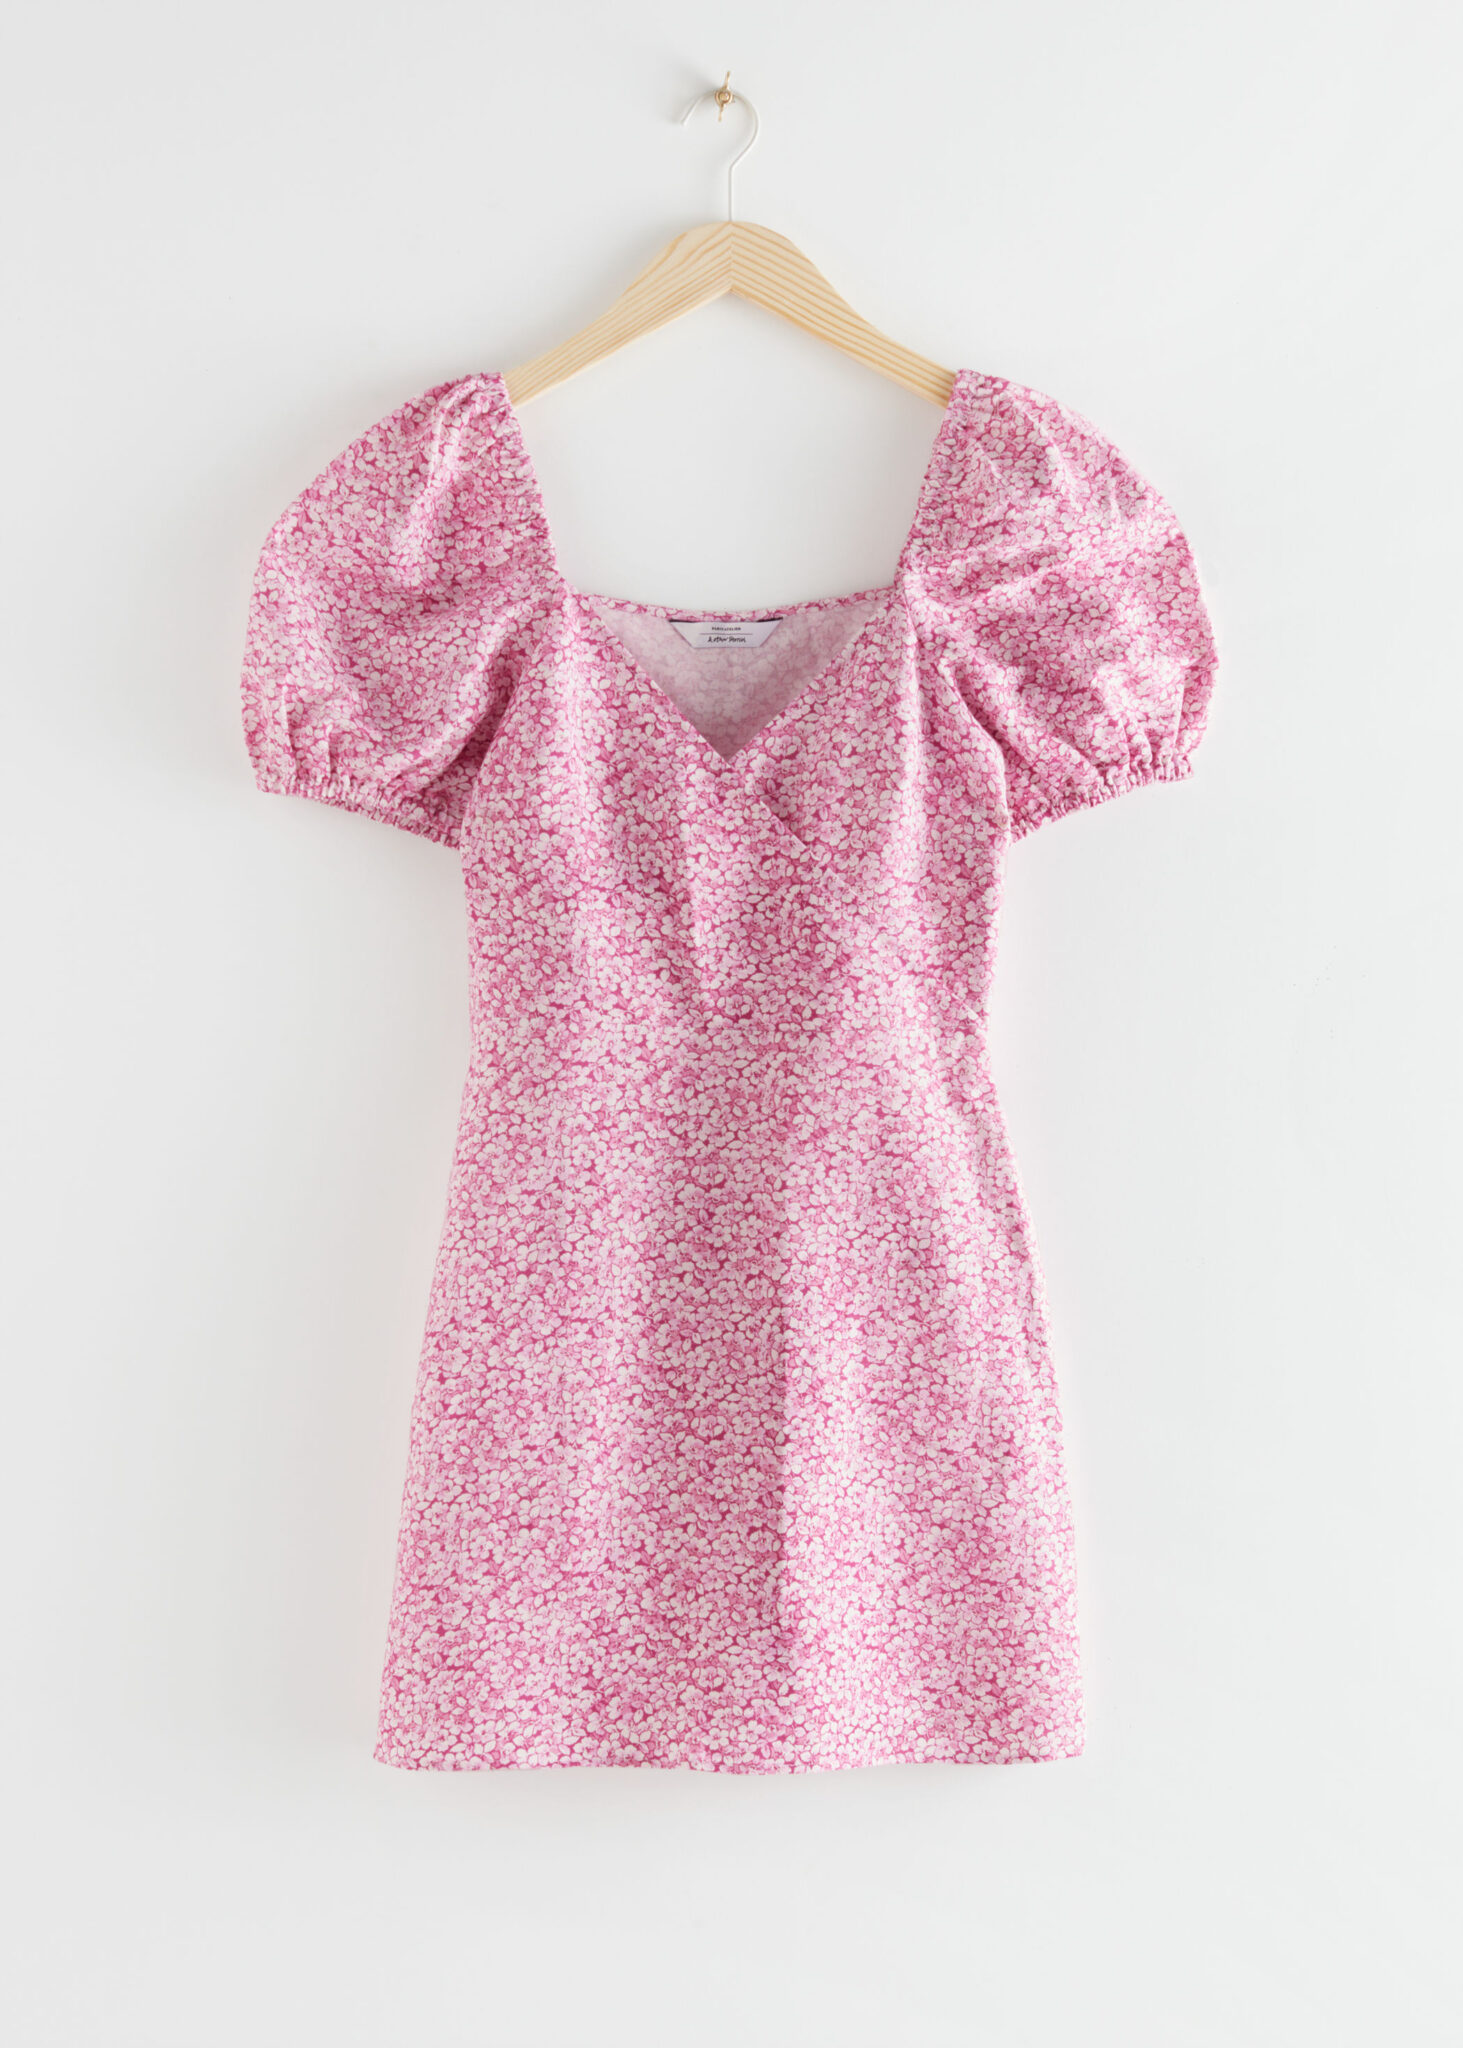 Fitted Puff Sleeve Mini Dress, & Other Stories, £55.00